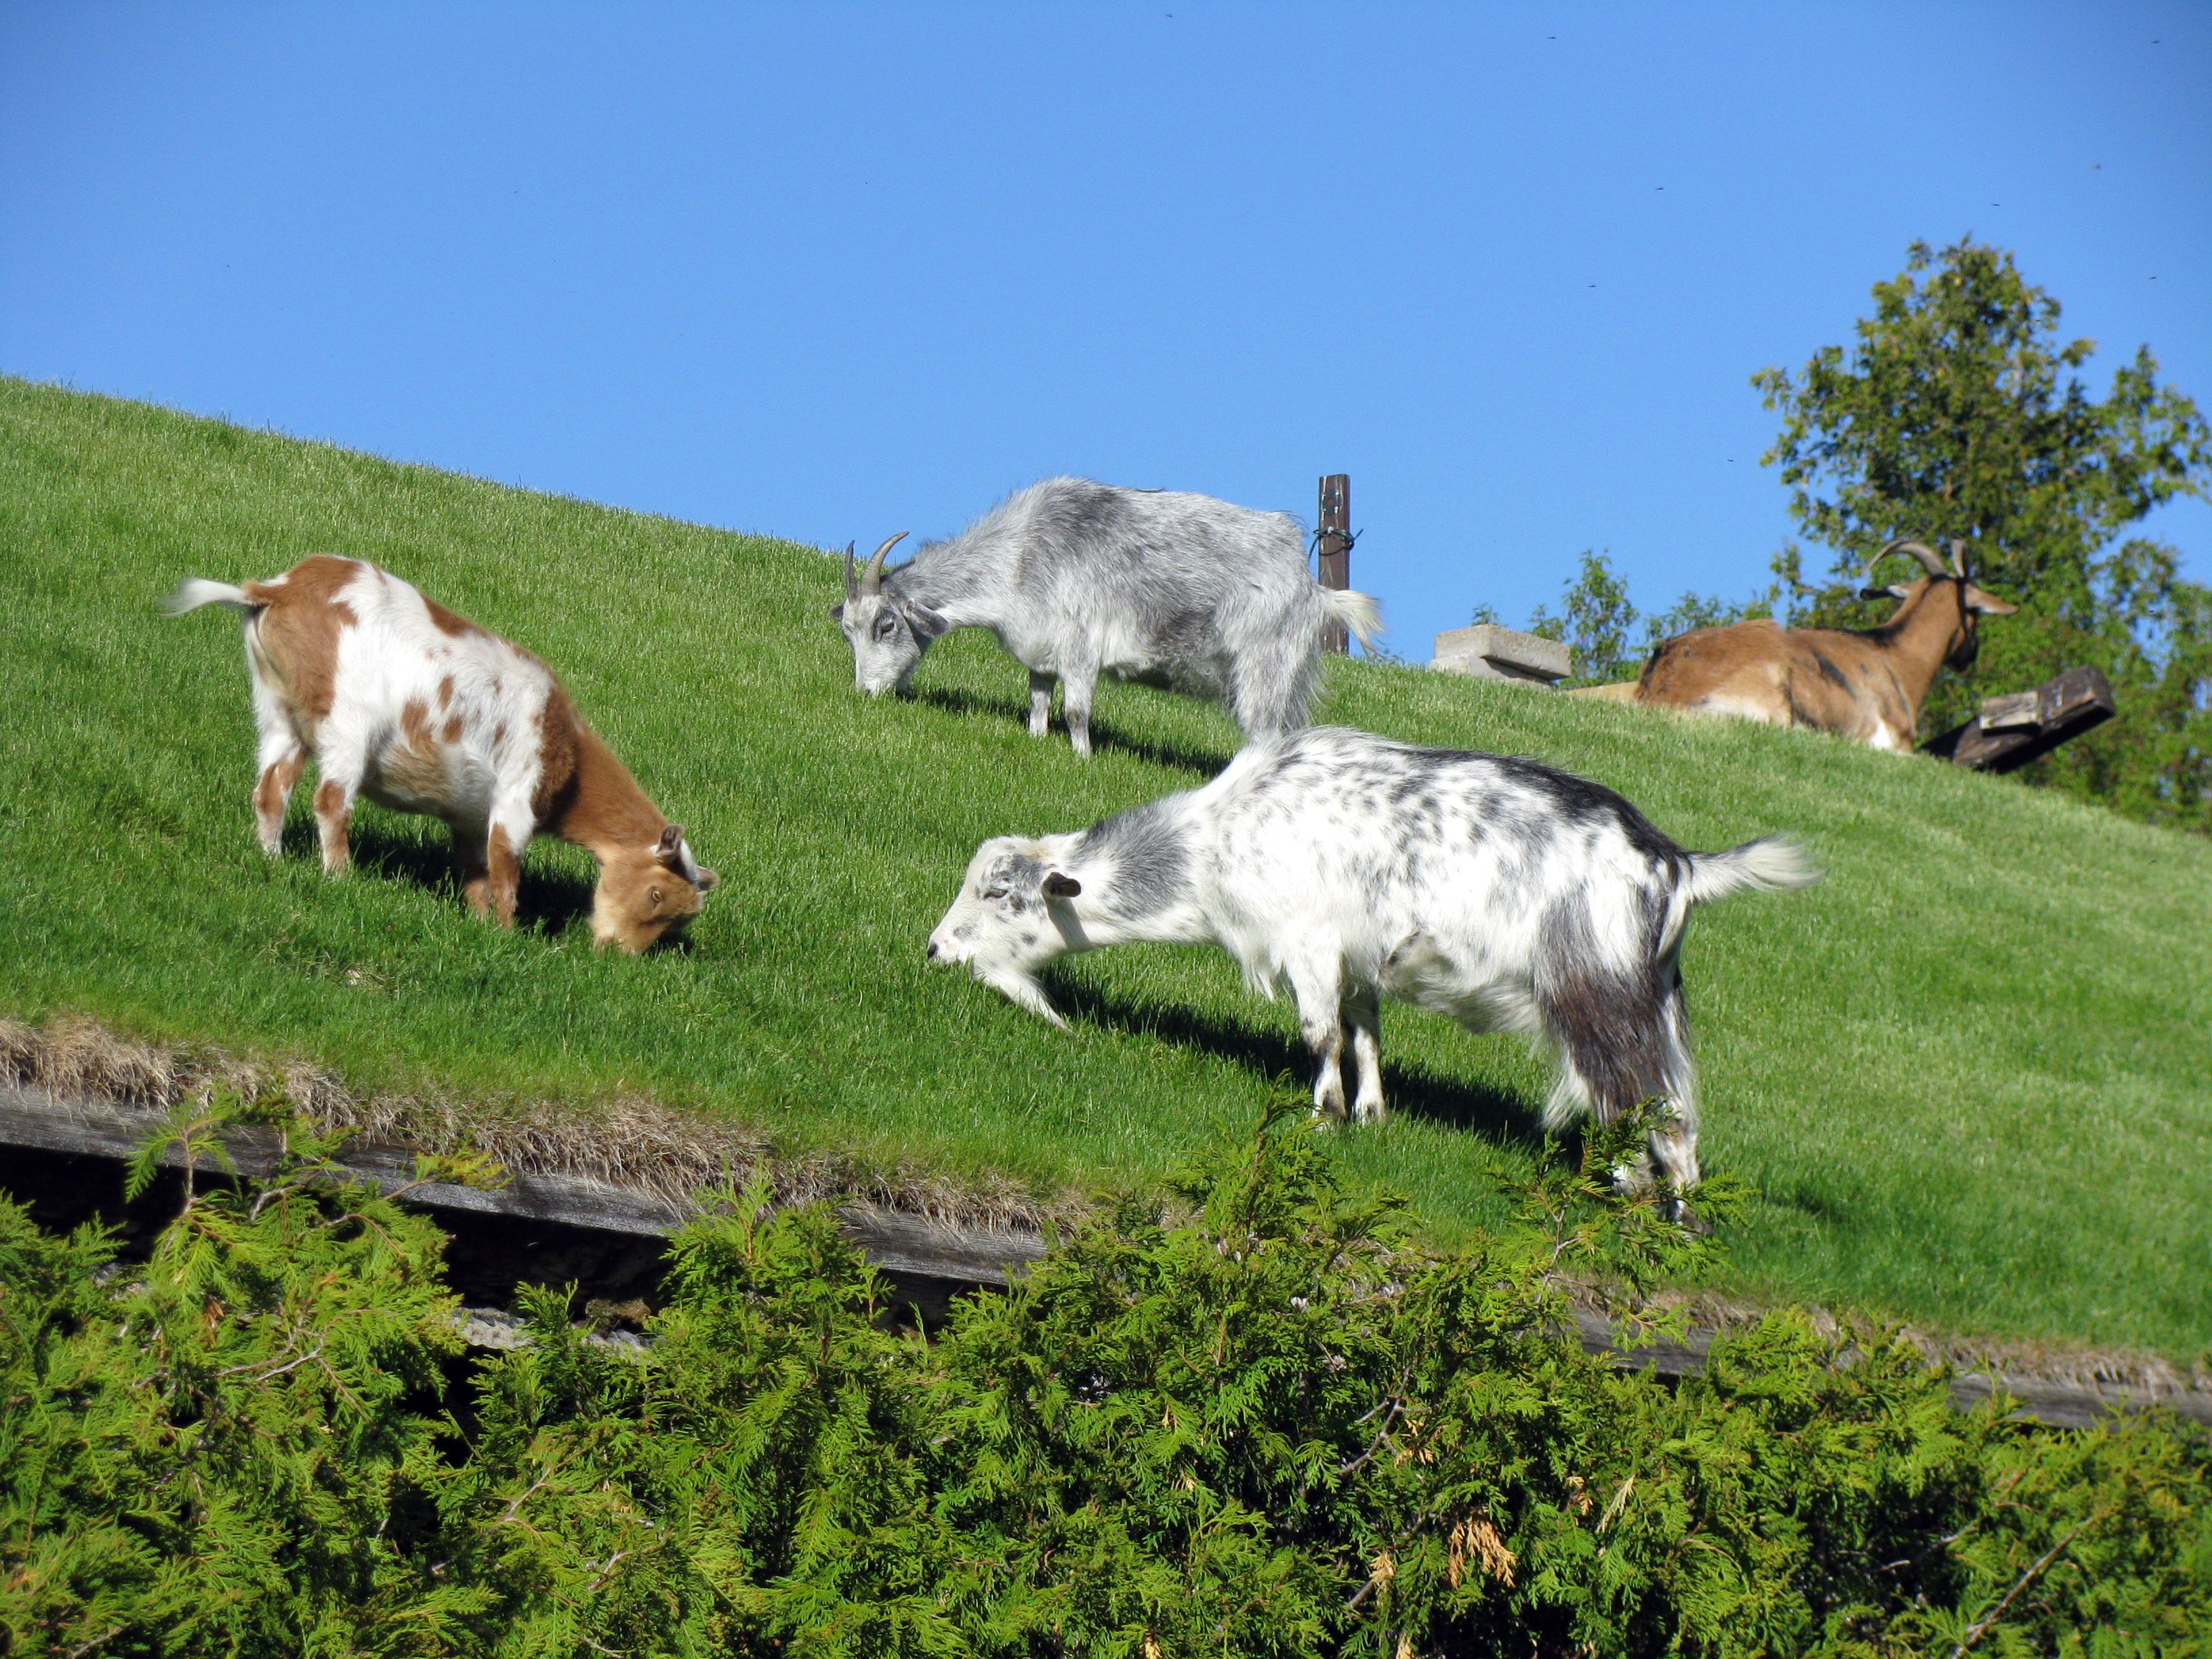 Find Out Why These Goats Are on the Roof of This Wisconsin Restaurant